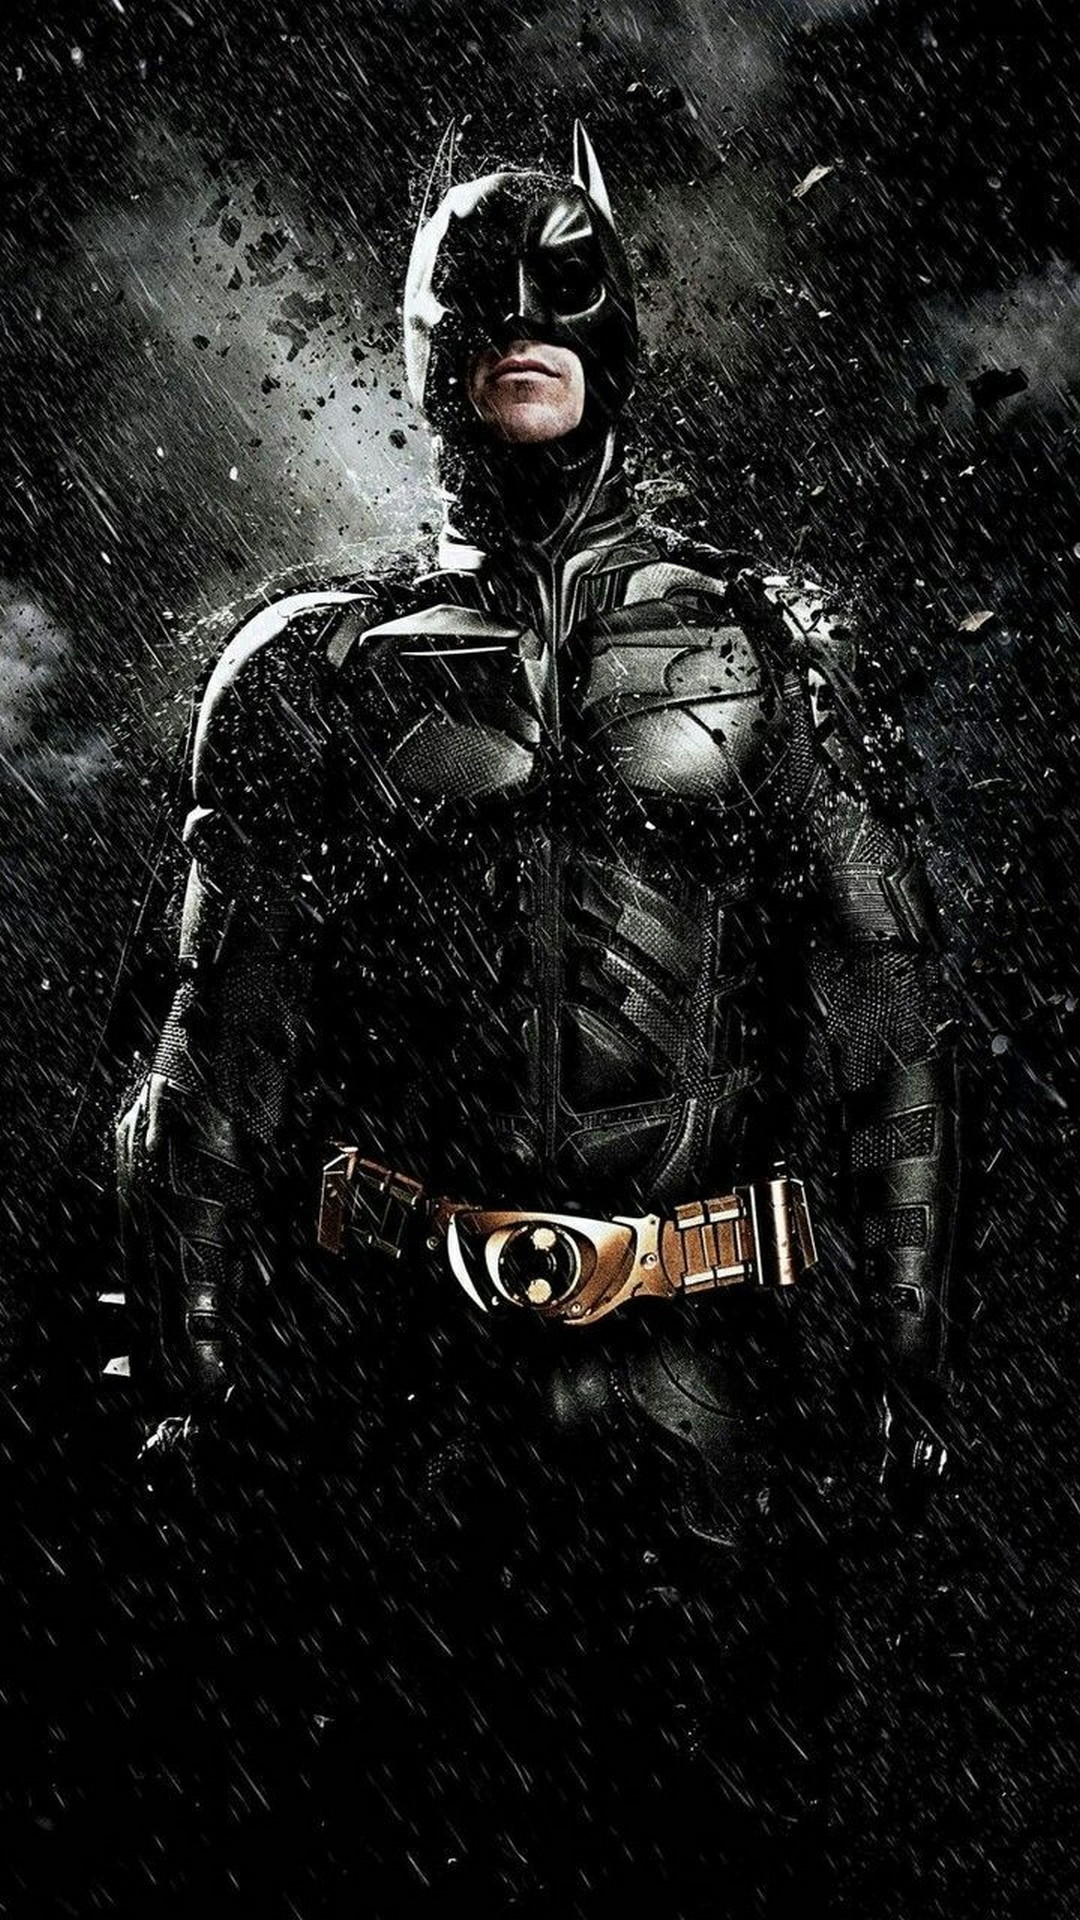 Batman Mobile Wallpaper HD with high-resolution 1080x1920 pixel. You can use this wallpaper for your Desktop Computer Backgrounds, Mac Wallpapers, Android Lock screen or iPhone Screensavers and another smartphone device